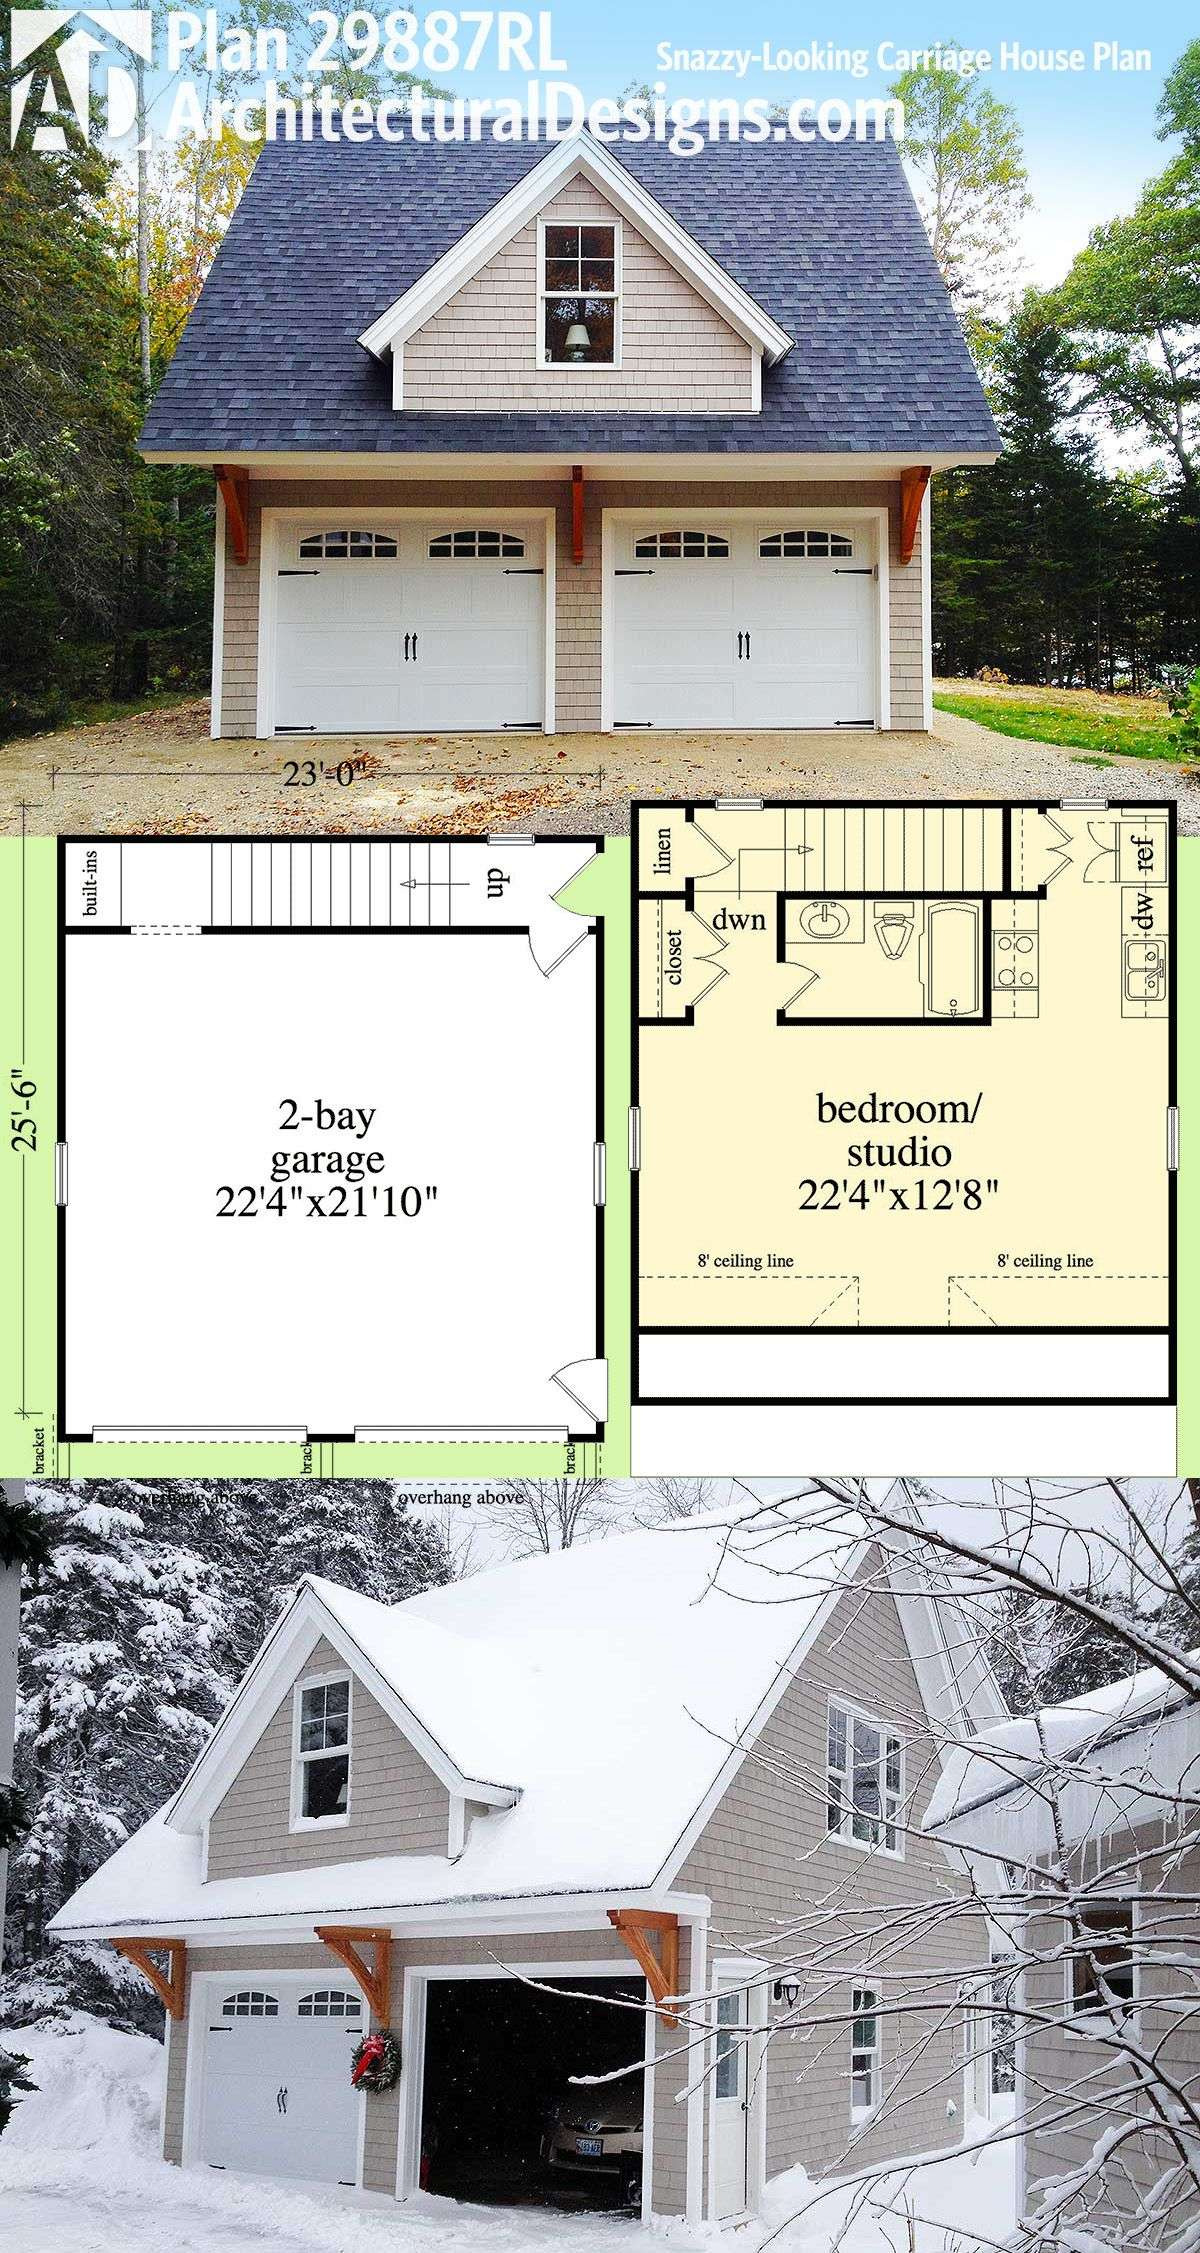 house plans with breezeway to guest house excellent plan rl snazzy looking carriage house plan of house plans with breezeway to guest house